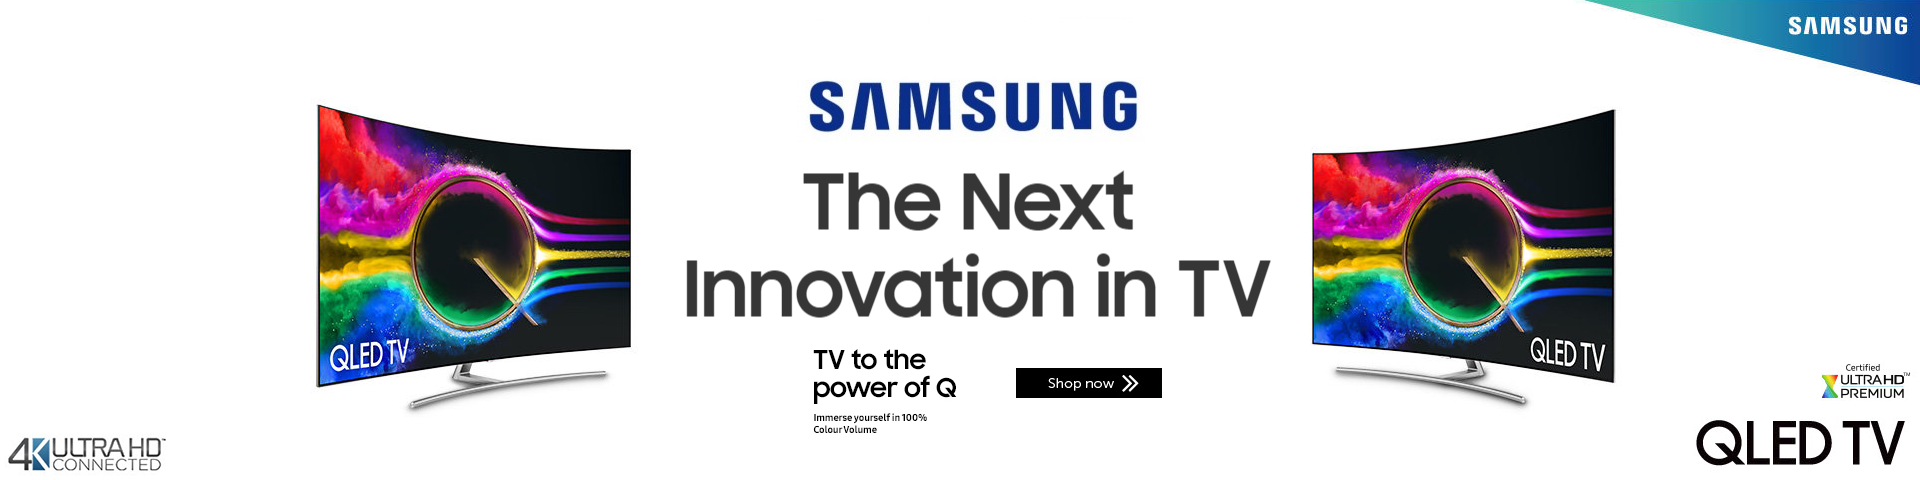 Samsung QLED - The Next Innovation in TV